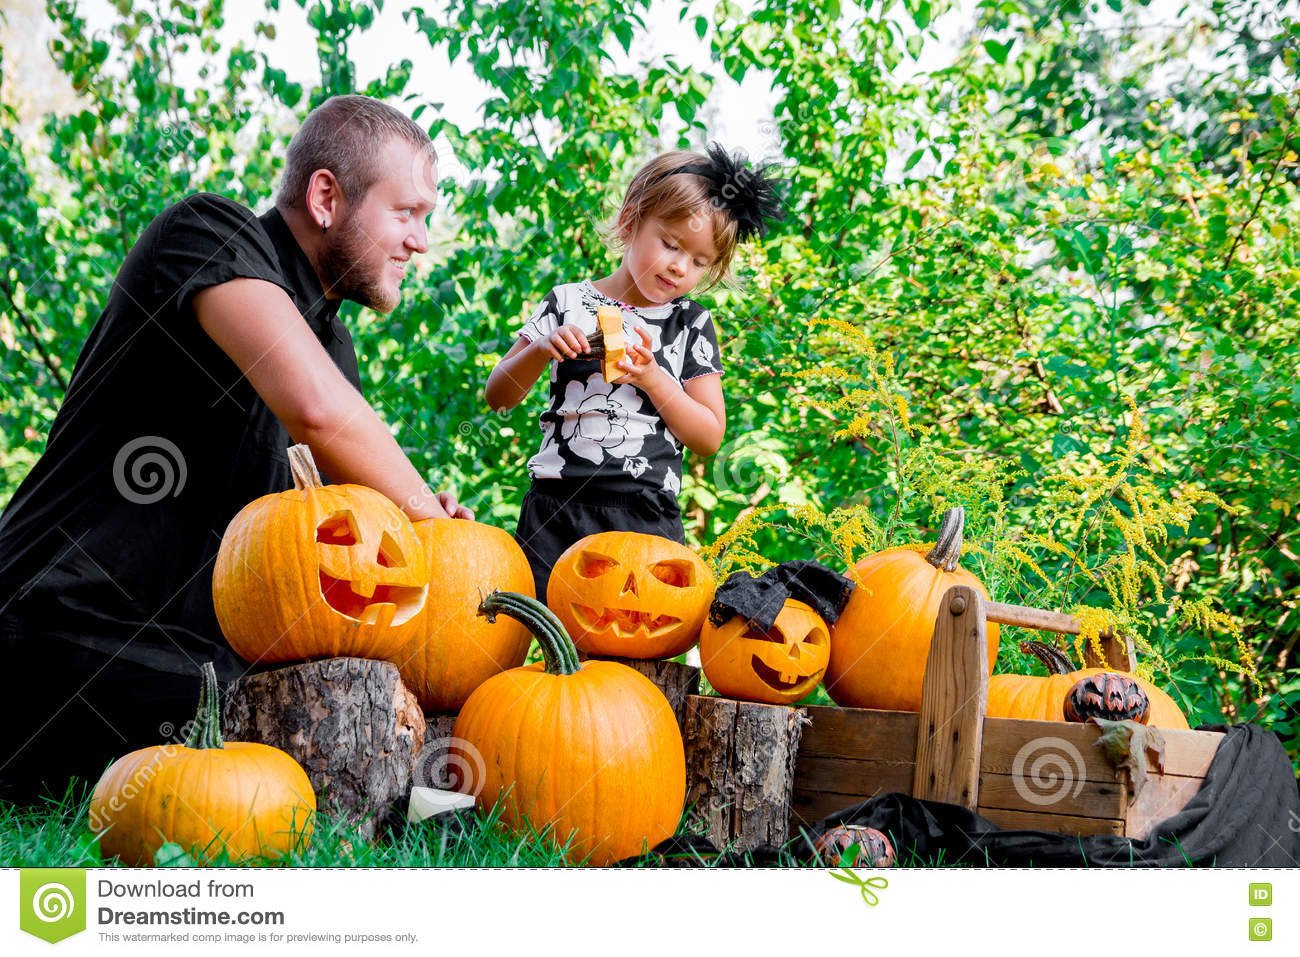 Daughter near father who pulls seeds and fibrous material from a pumpkin before carving for Halloween. Prepares jack-o-lantern. D